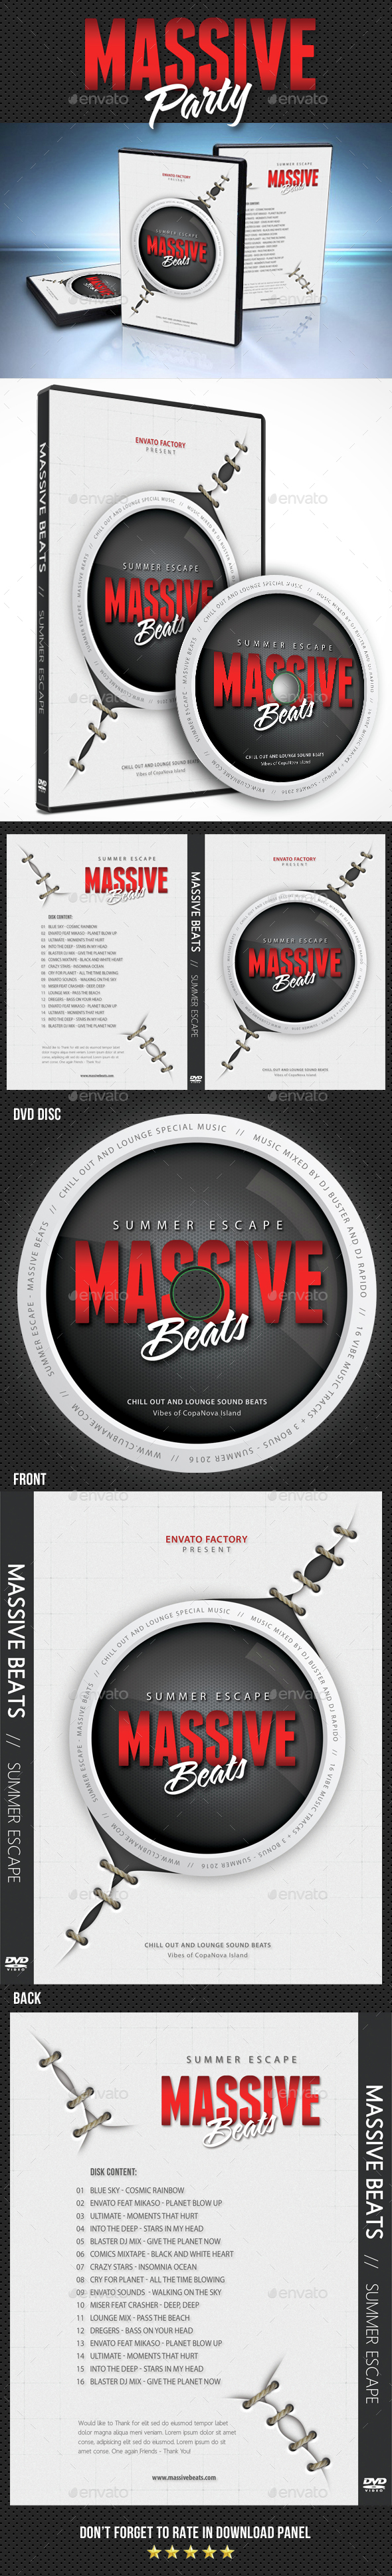 Massive Party Event DVD Cover Template - CD & DVD Artwork Print Templates